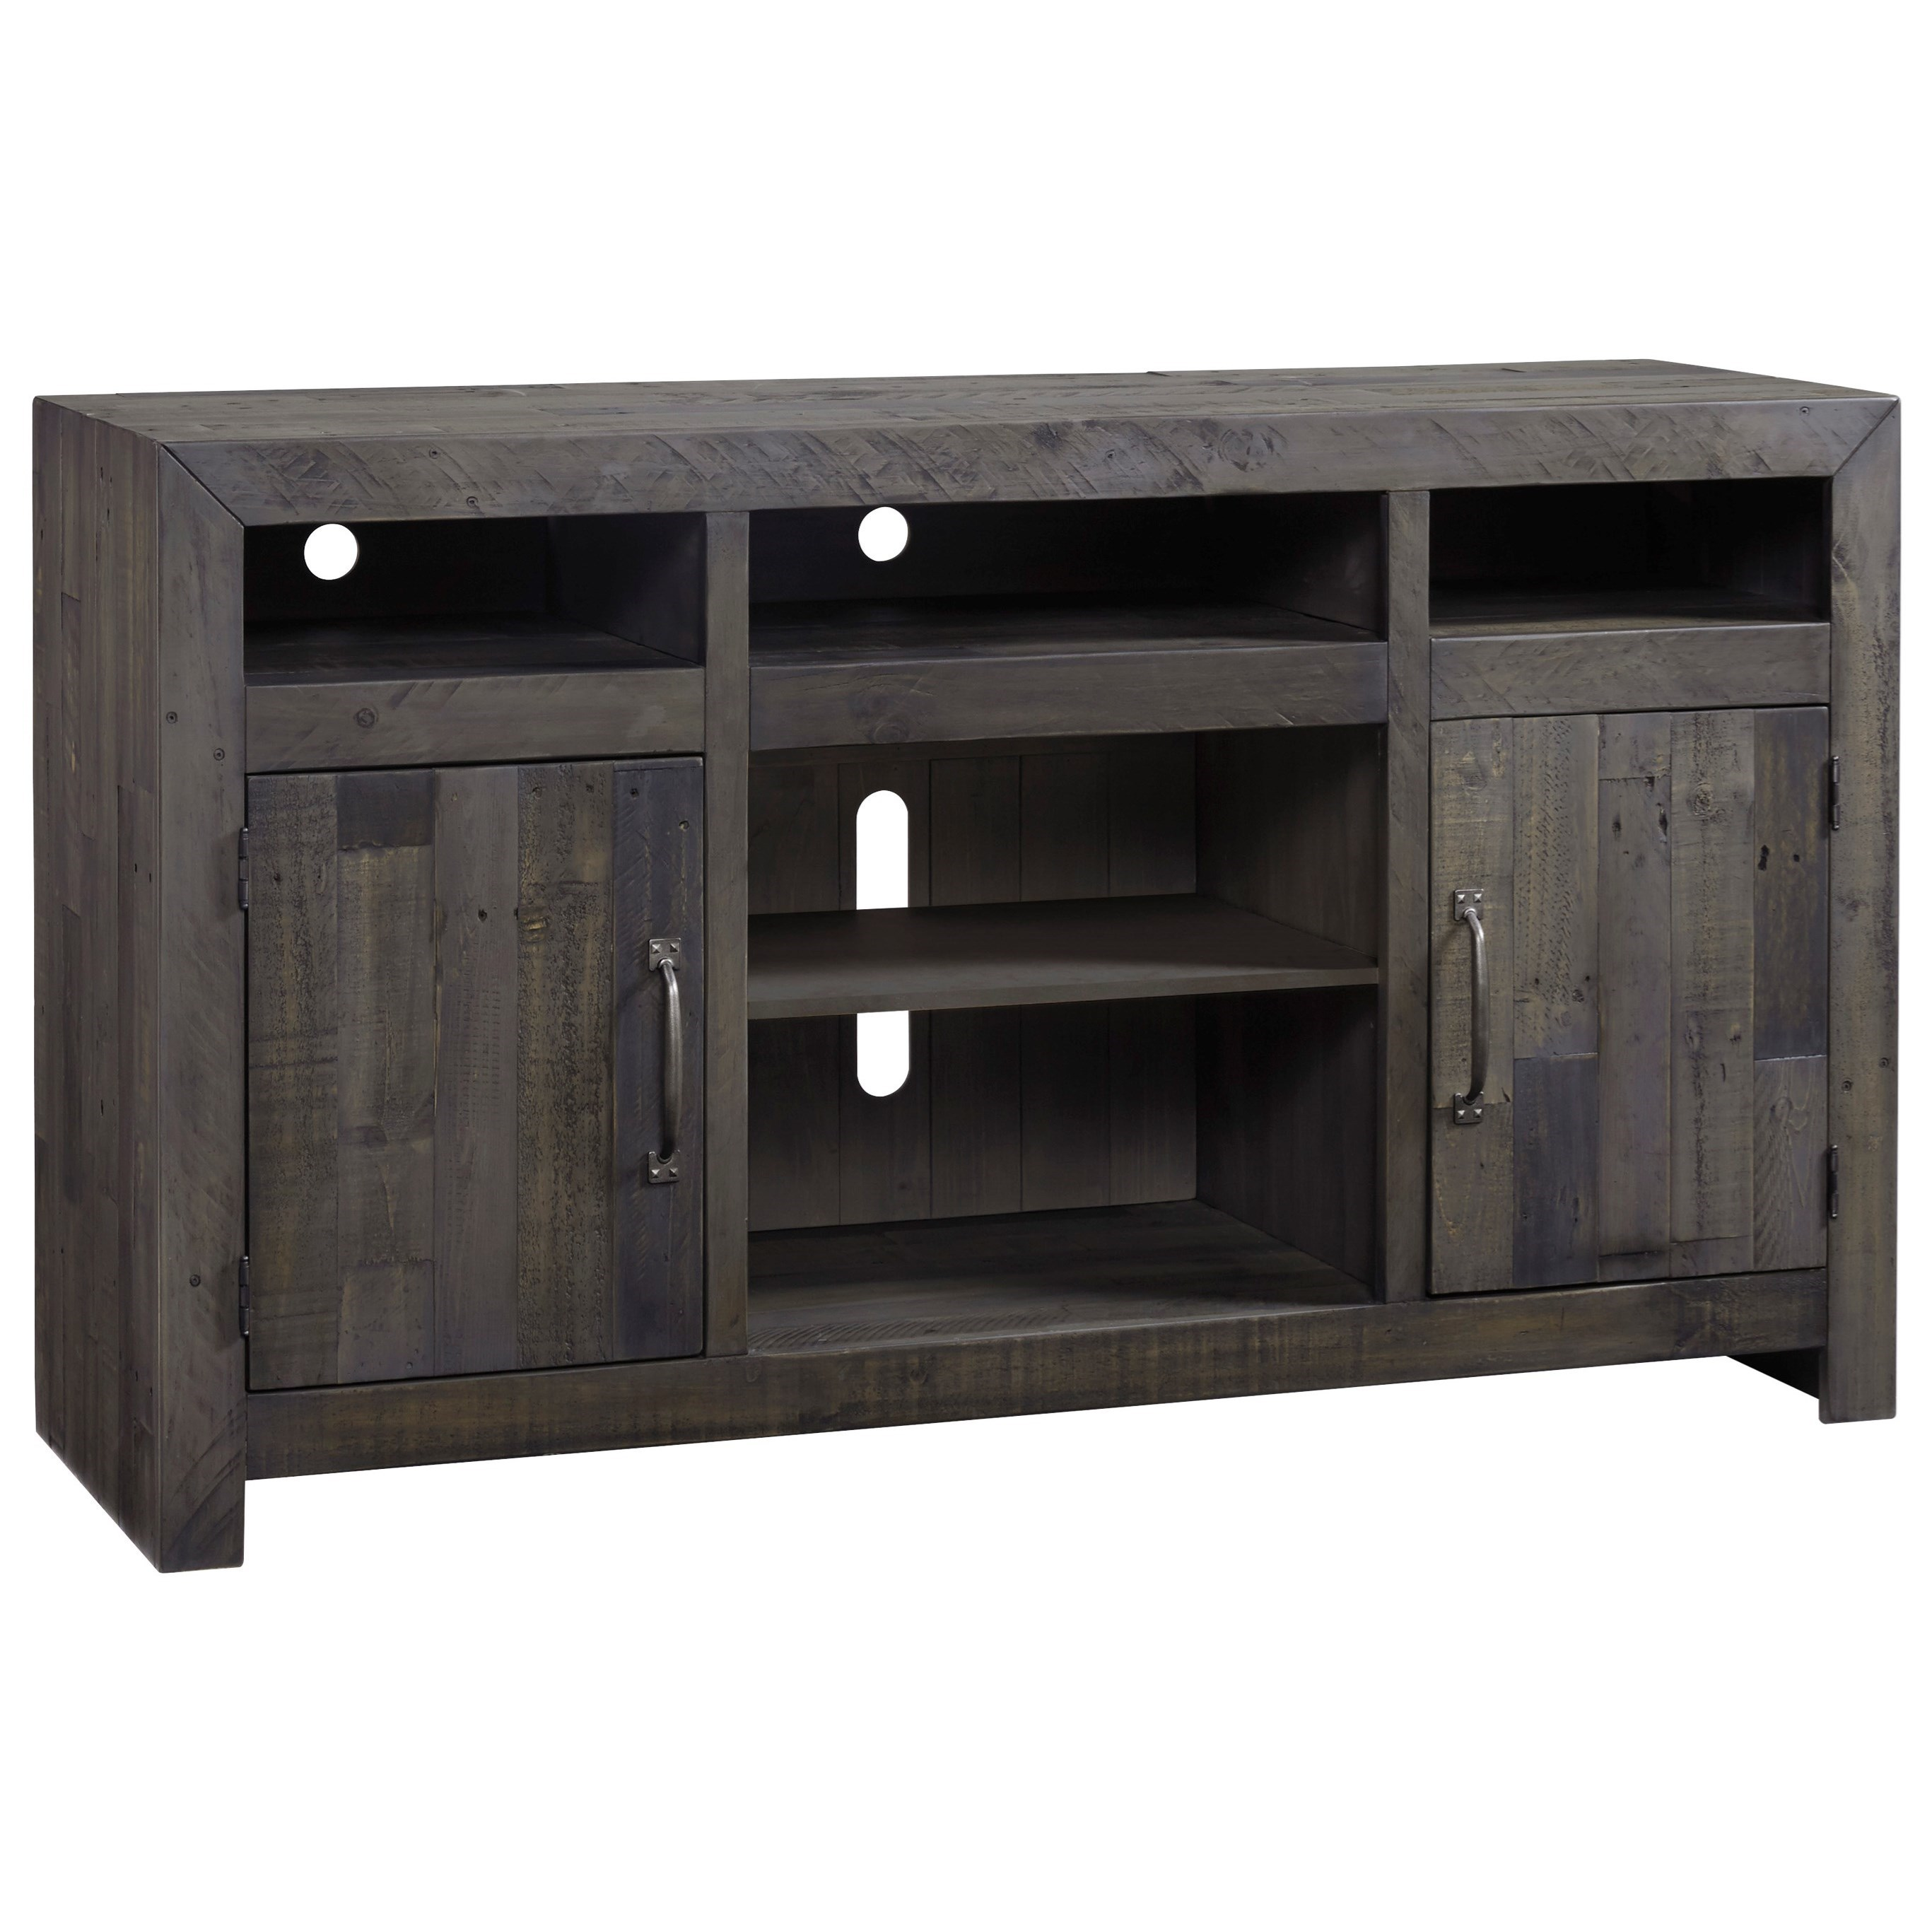 Mayflyn TV Stand by Signature Design by Ashley at HomeWorld Furniture